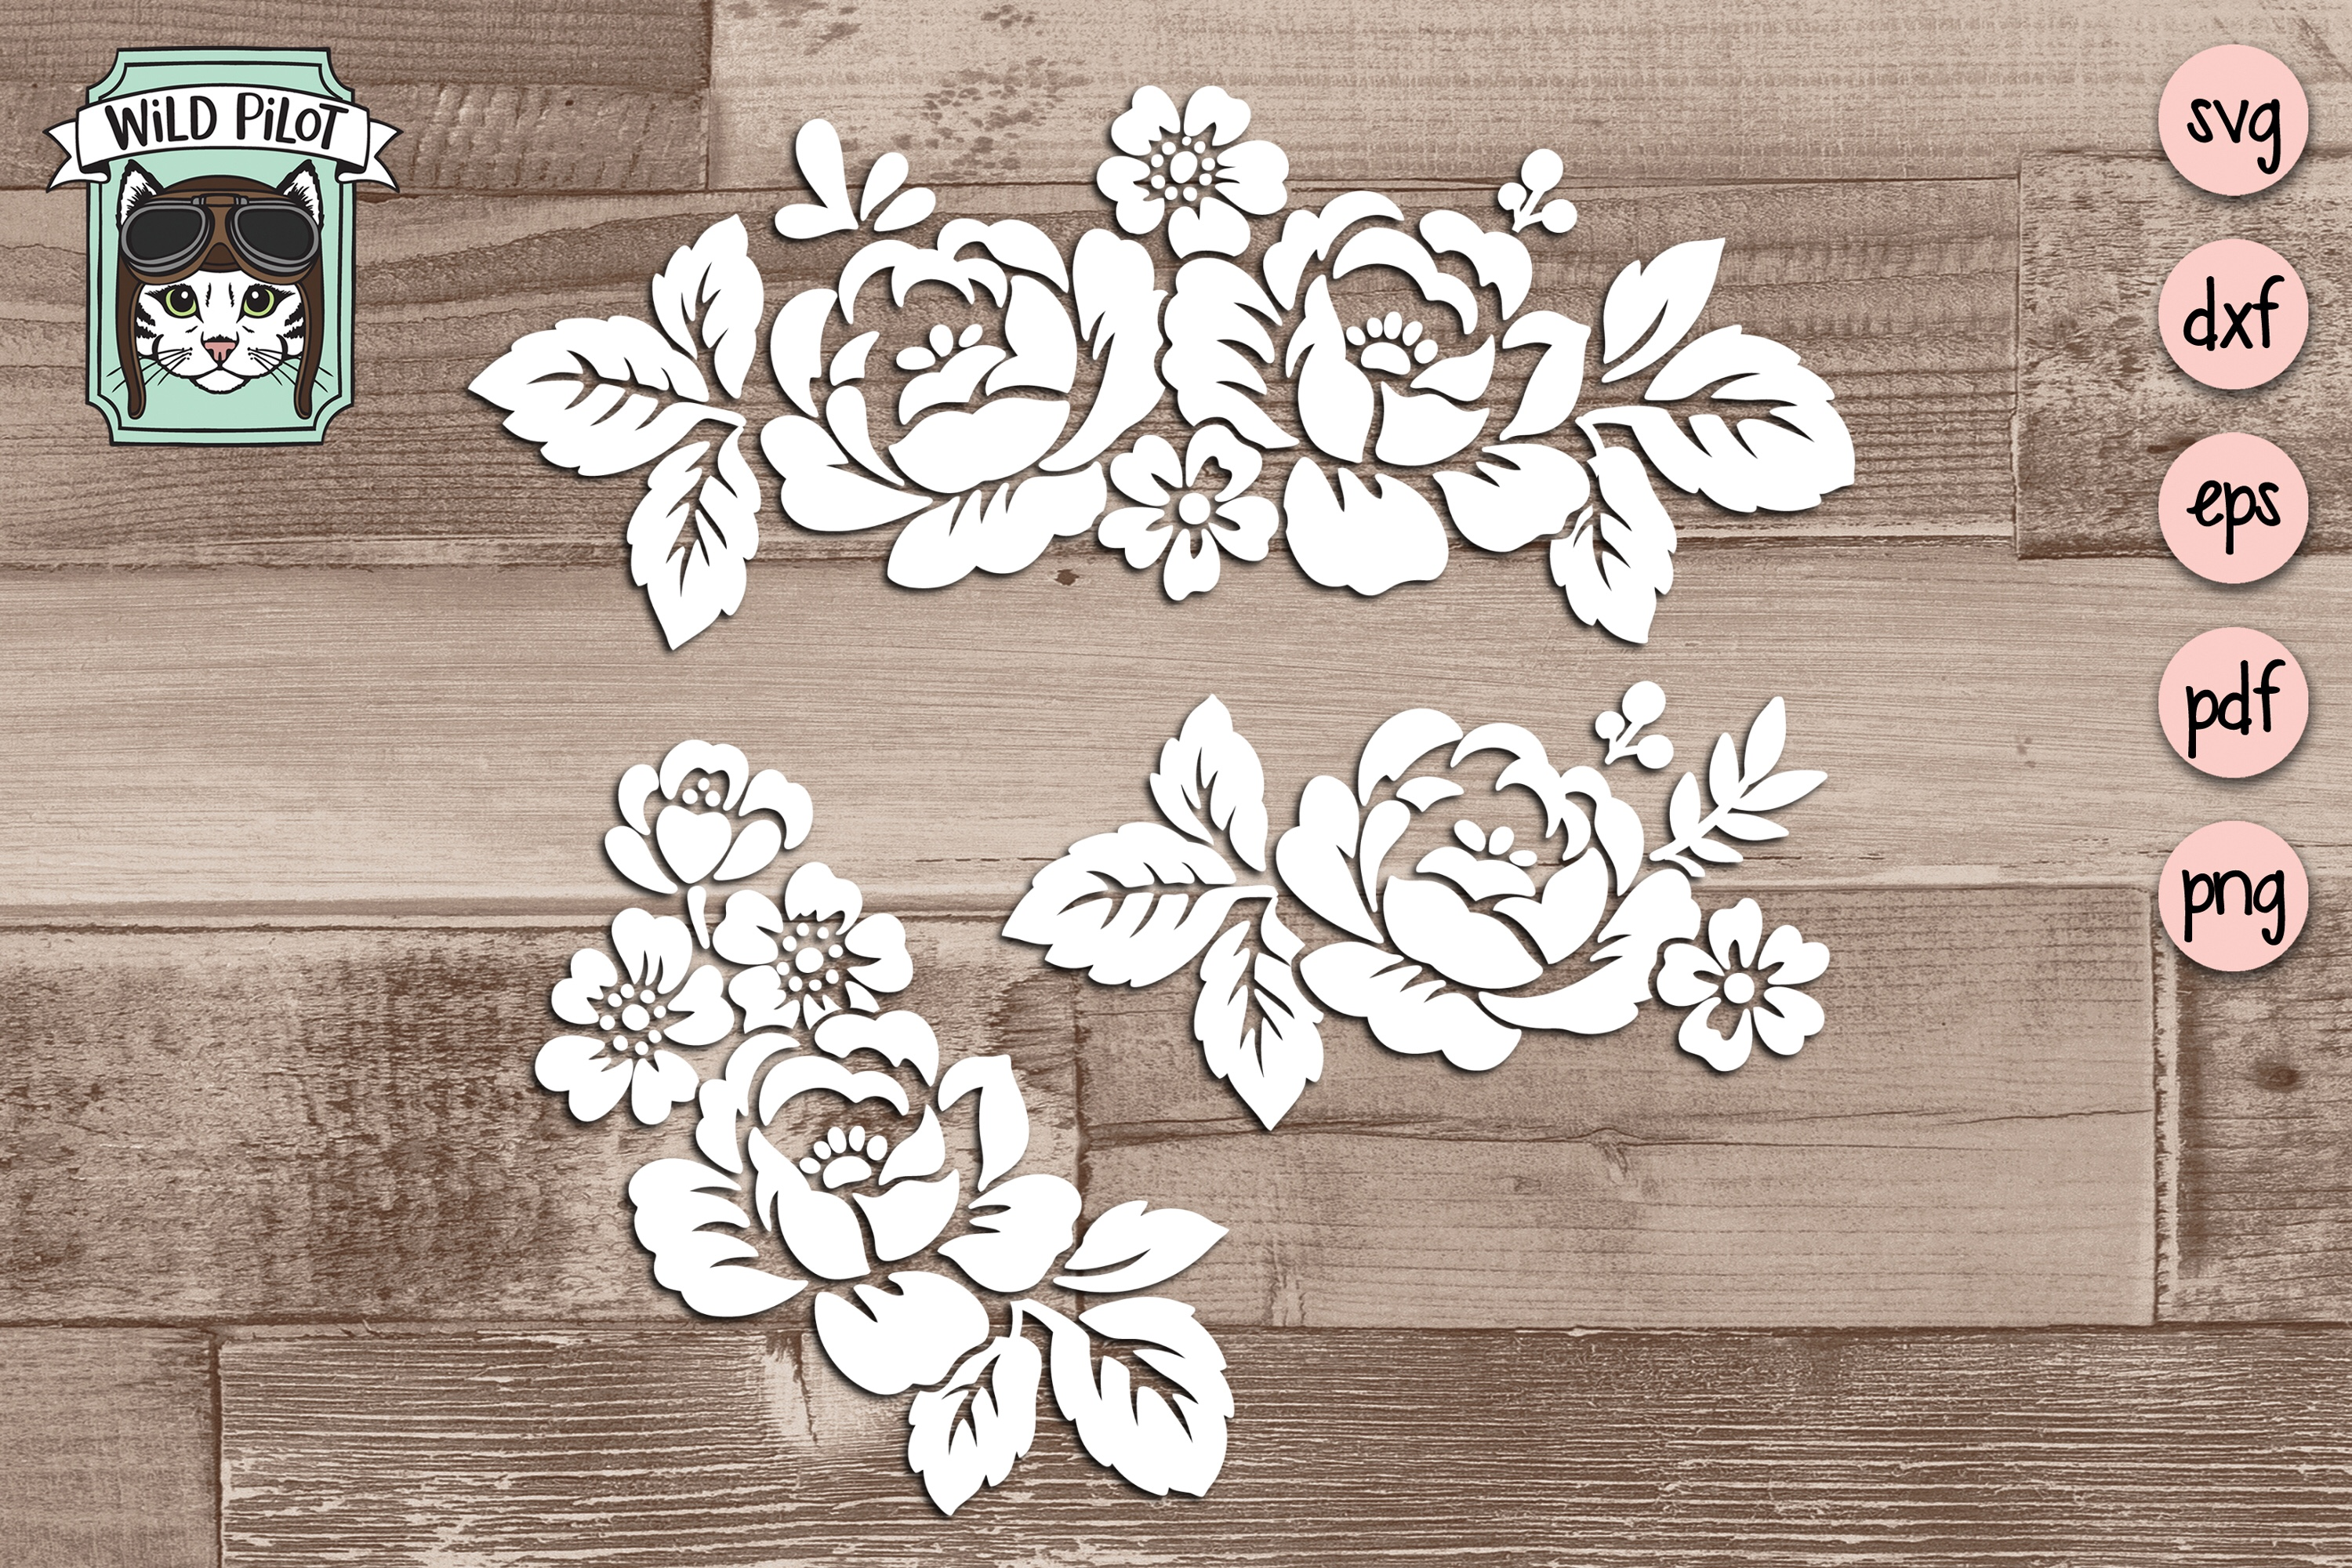 Flowers SVG file, Floral cut file, Flower Border, Stencil example image 1